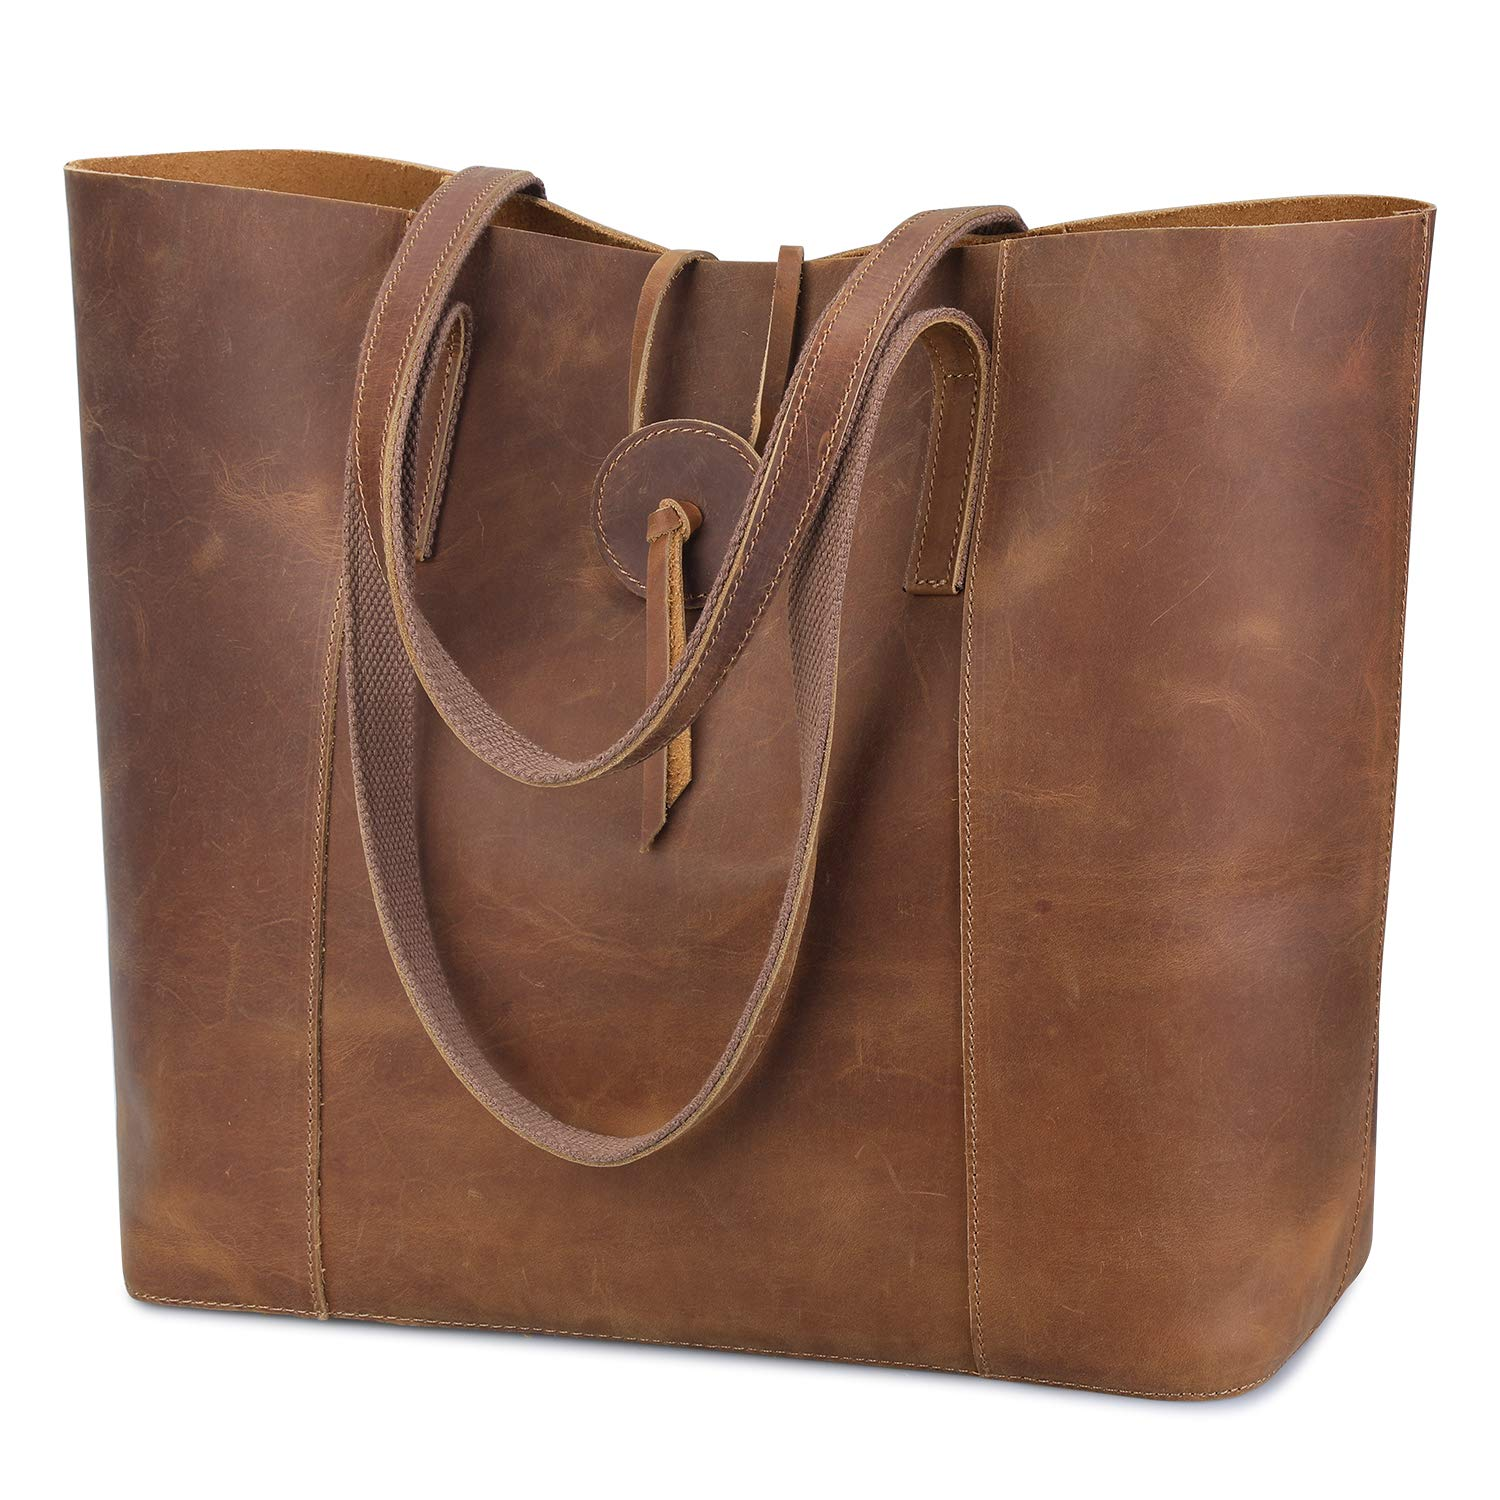 S-ZONE Vintage Women Genuine Leather Tote Bag Purse with Removable Pouch